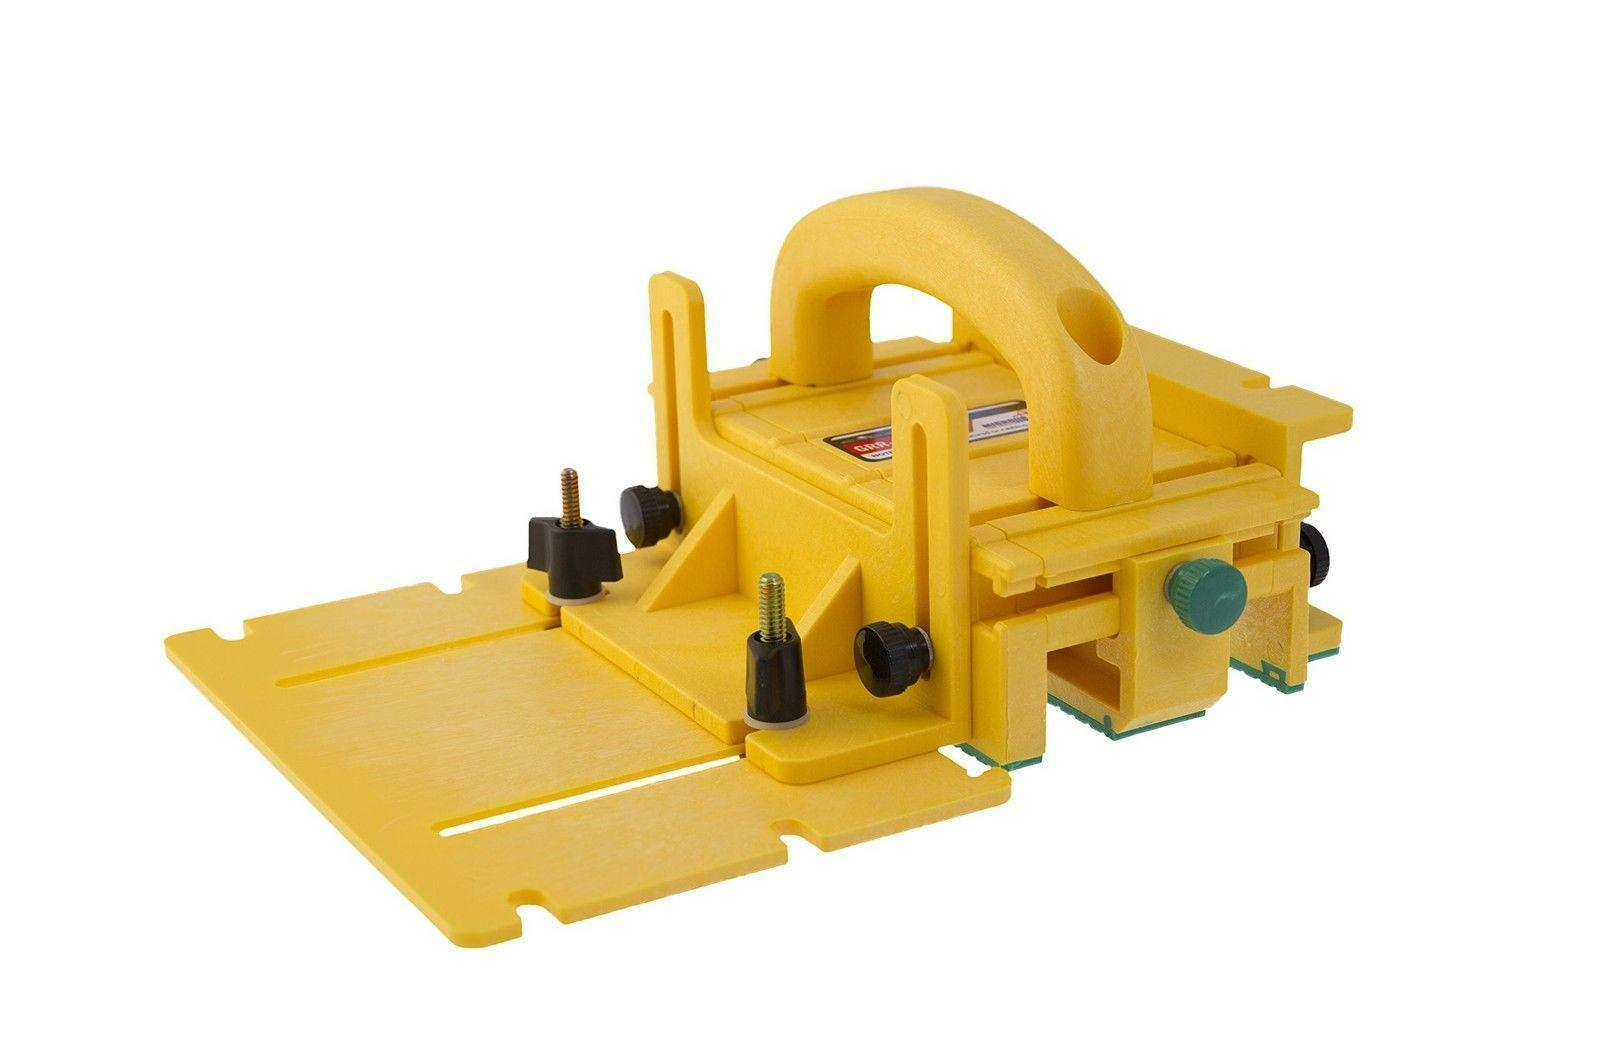 Table Saw Push Stick Safety Block Accessories Plastic Woodwo